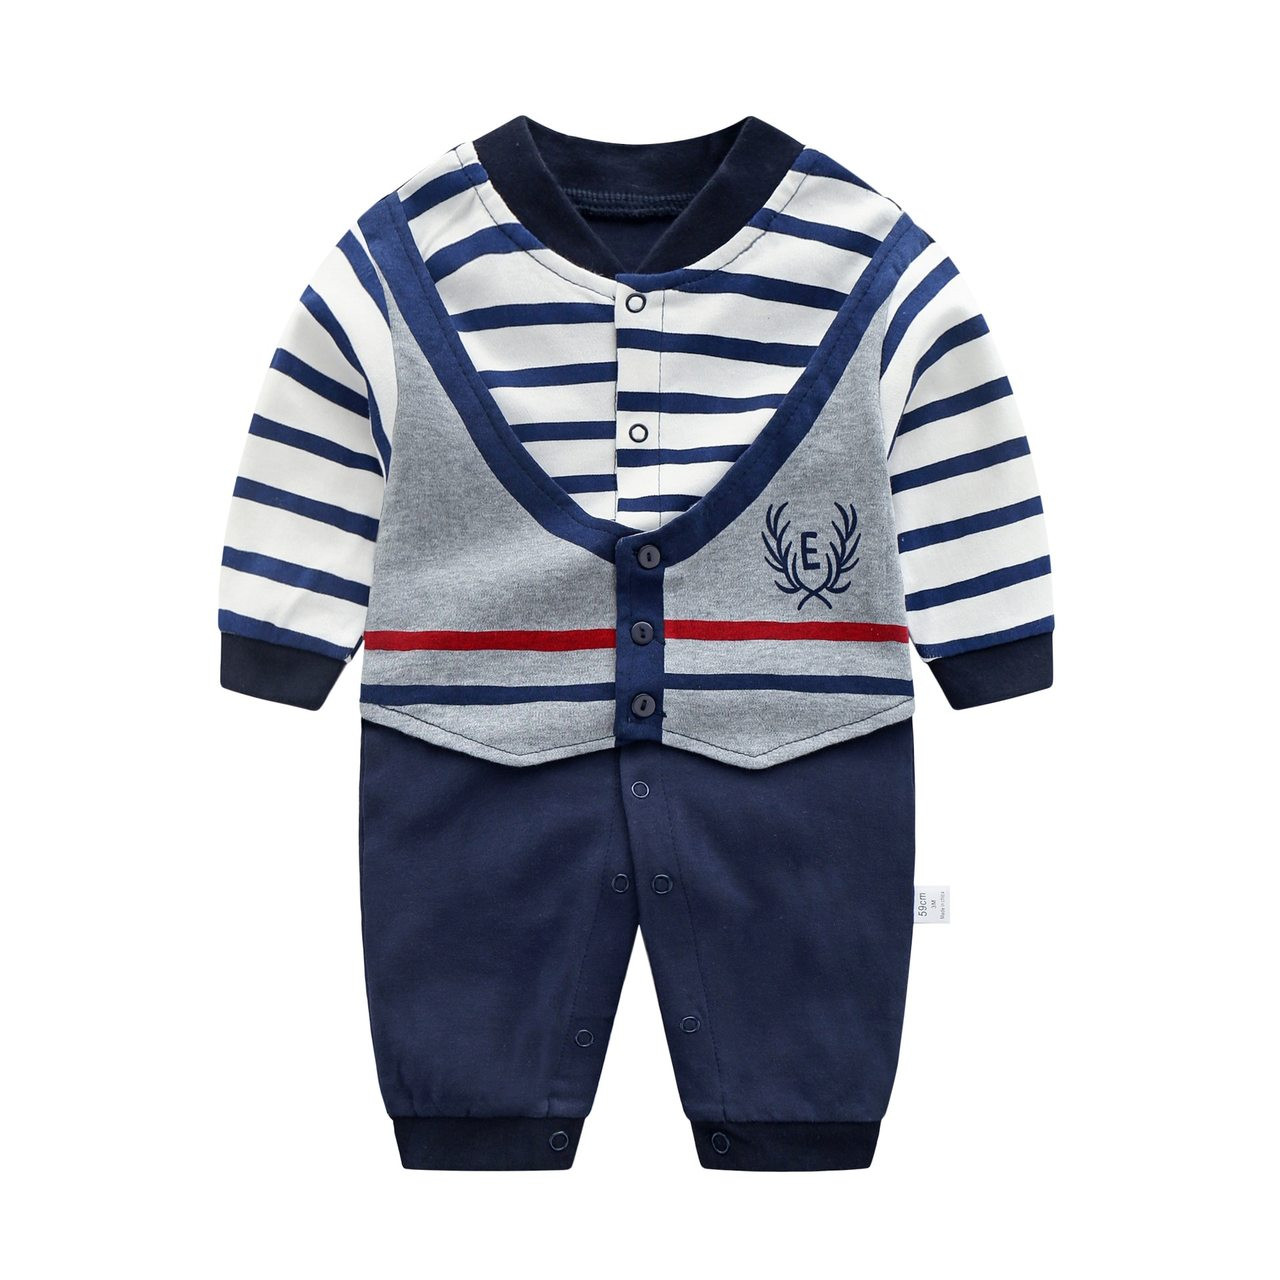 d1482a33269 ... Baby Jumpsuit Autumn Clothing Newborn Cotton Clothes Infant Long  Sleeved Rompers Baby Boys Bow Tie Climbing ...